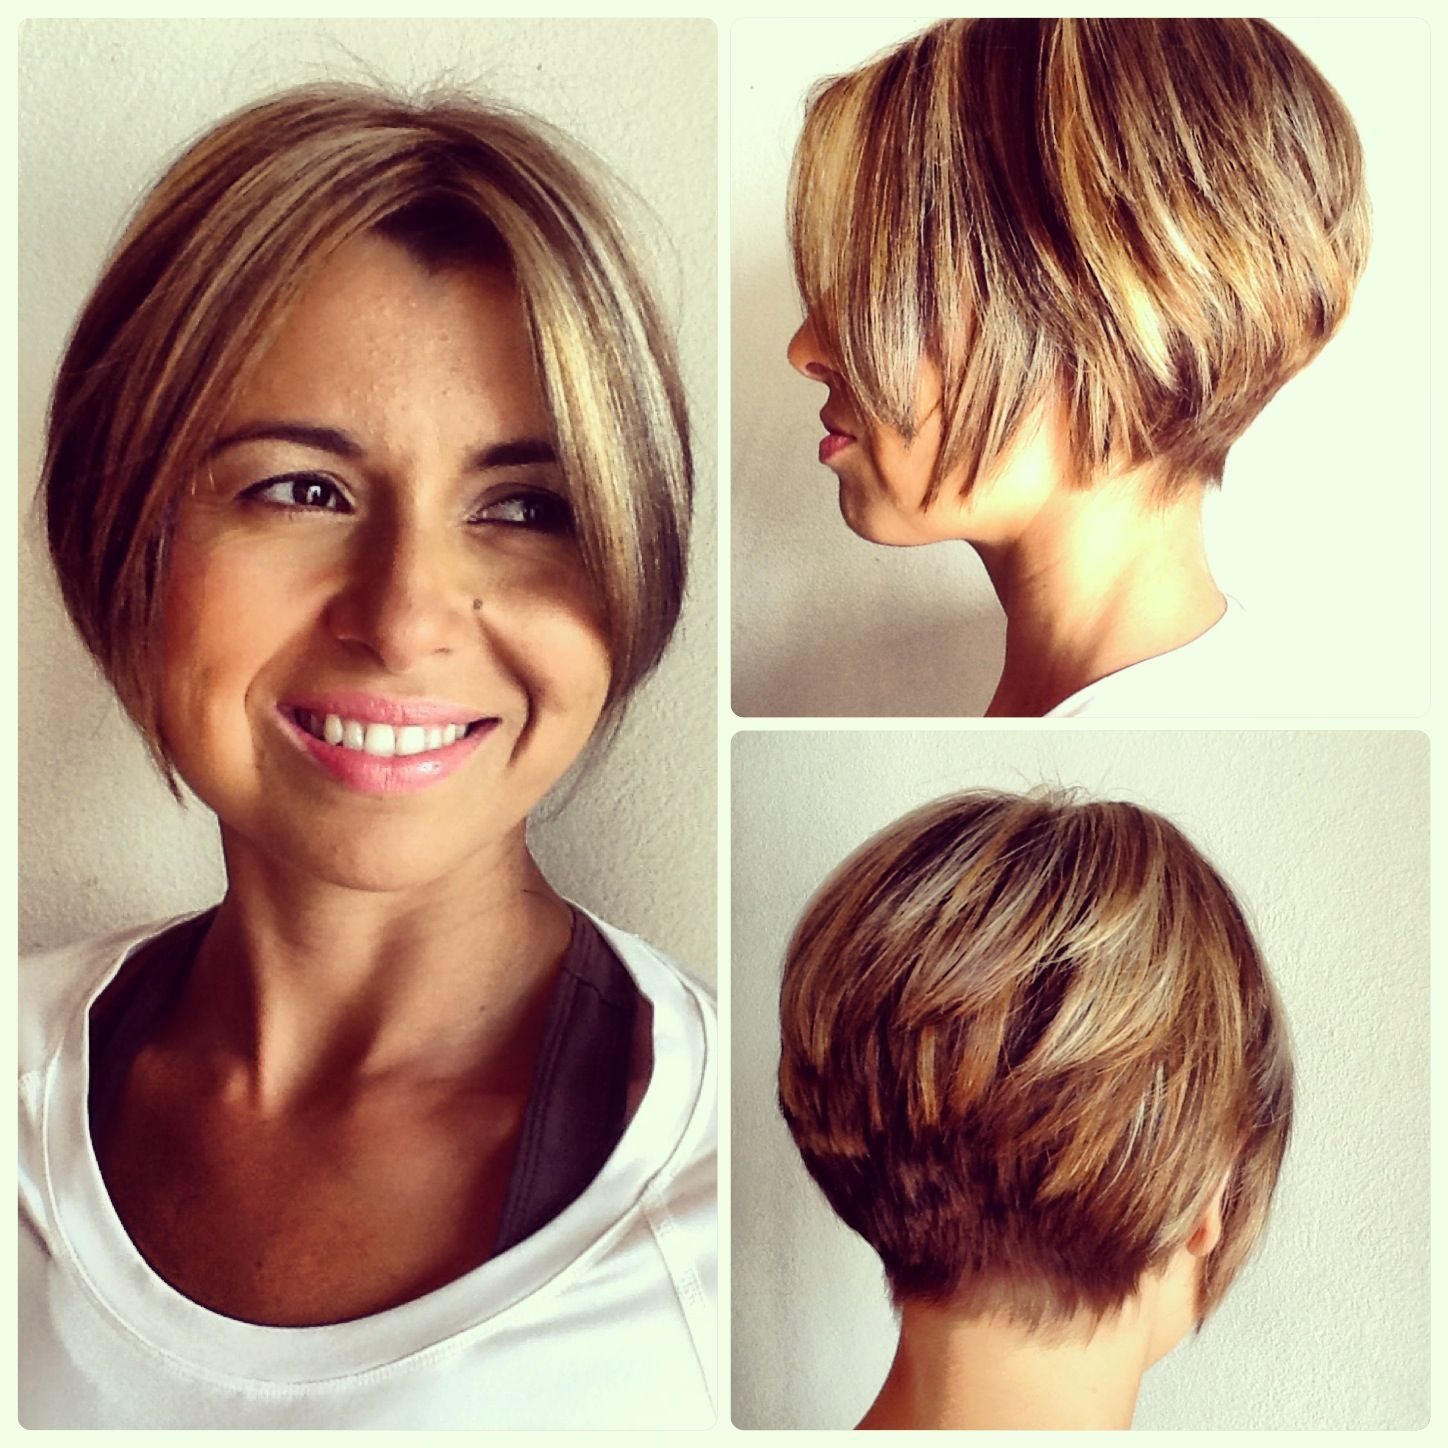 Mel Cut By Jessica Richardson Color By Obi Figeroa